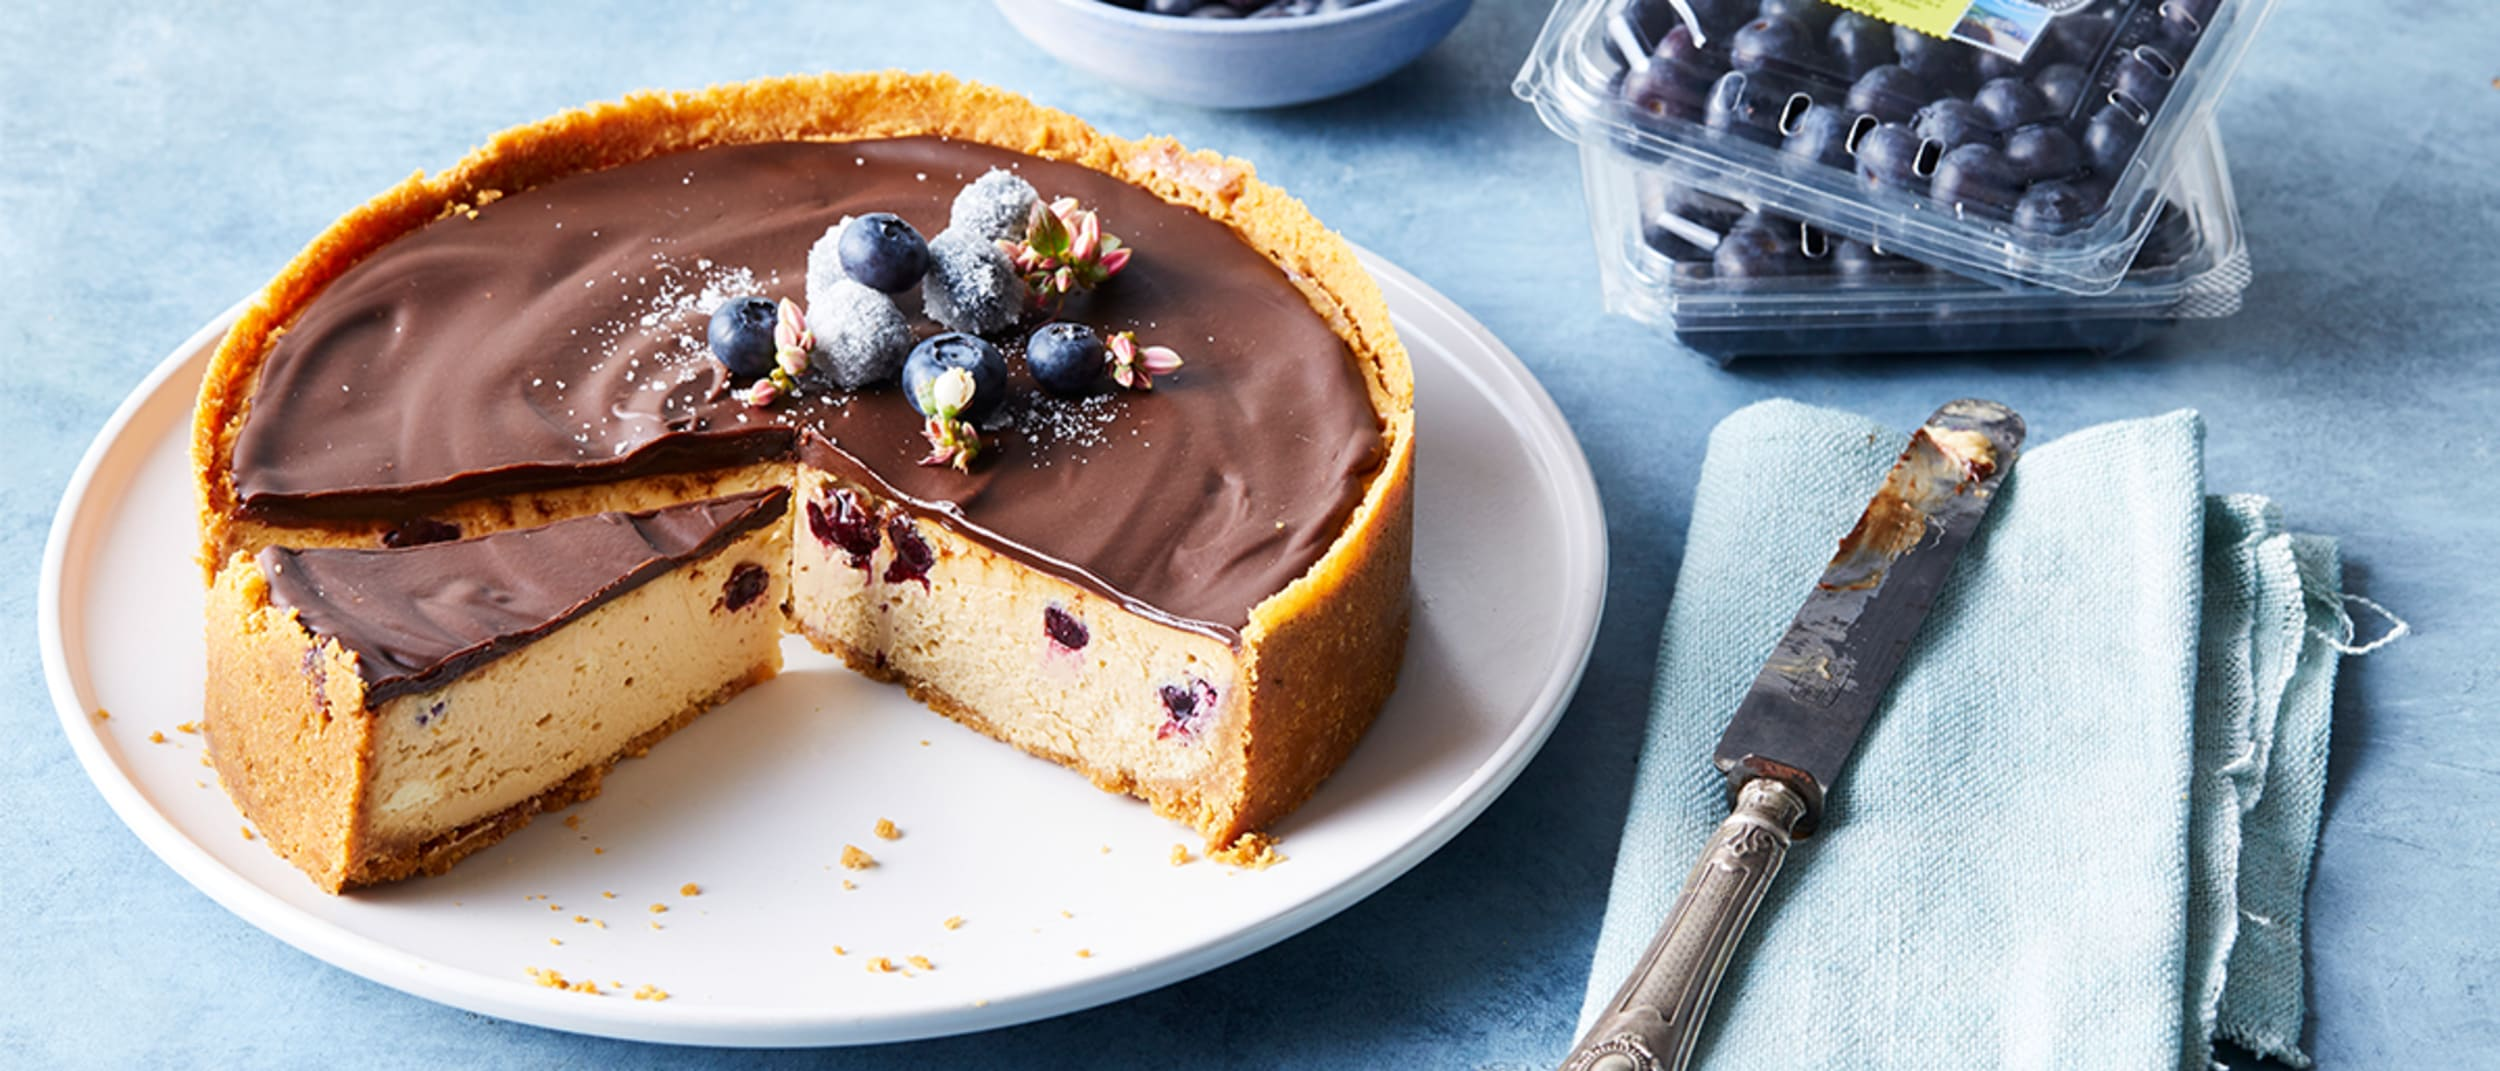 Blueberry caramel cheesecake